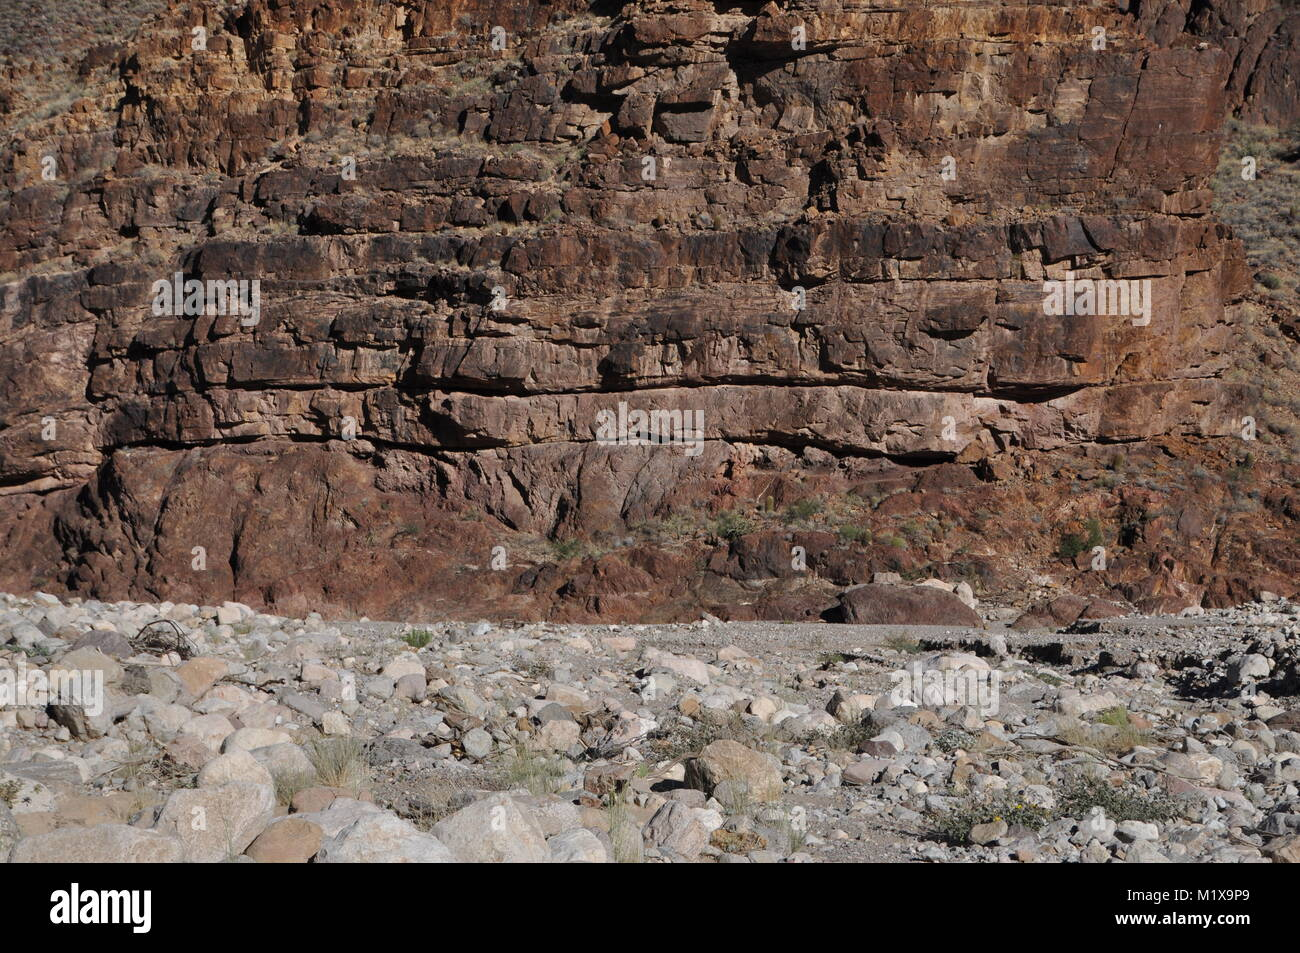 The Great Unconformity between Precambrian Vishnu Schist and Cambrian Tapeats Sandstone as exposed along the walls - Stock Image